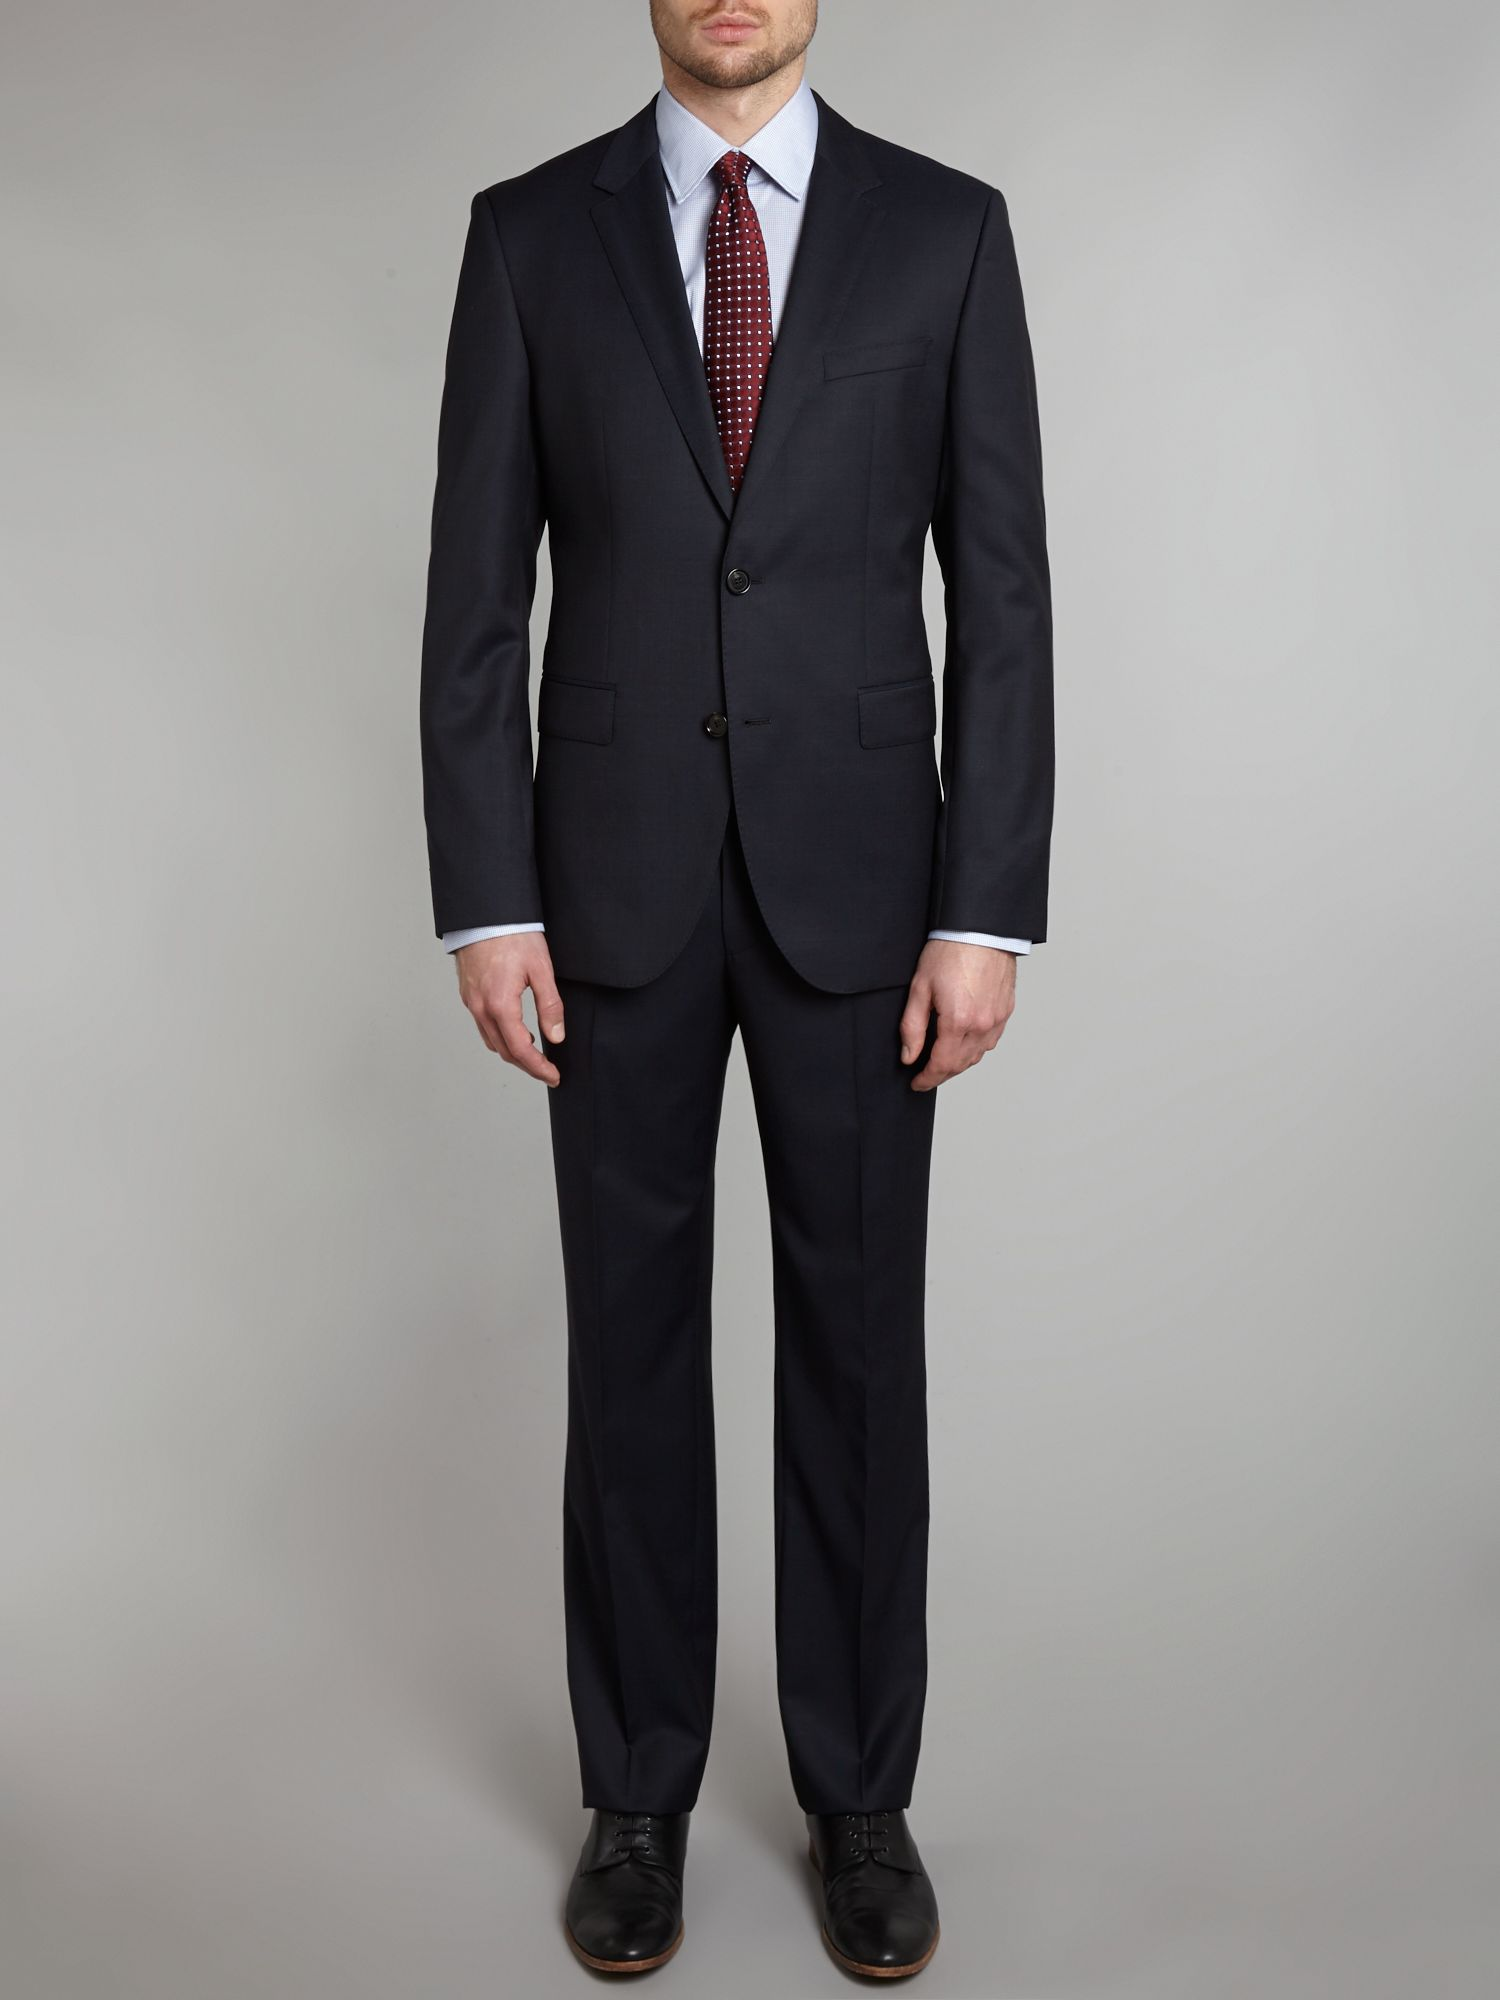 The James Sharp mini pindot regular fit suit